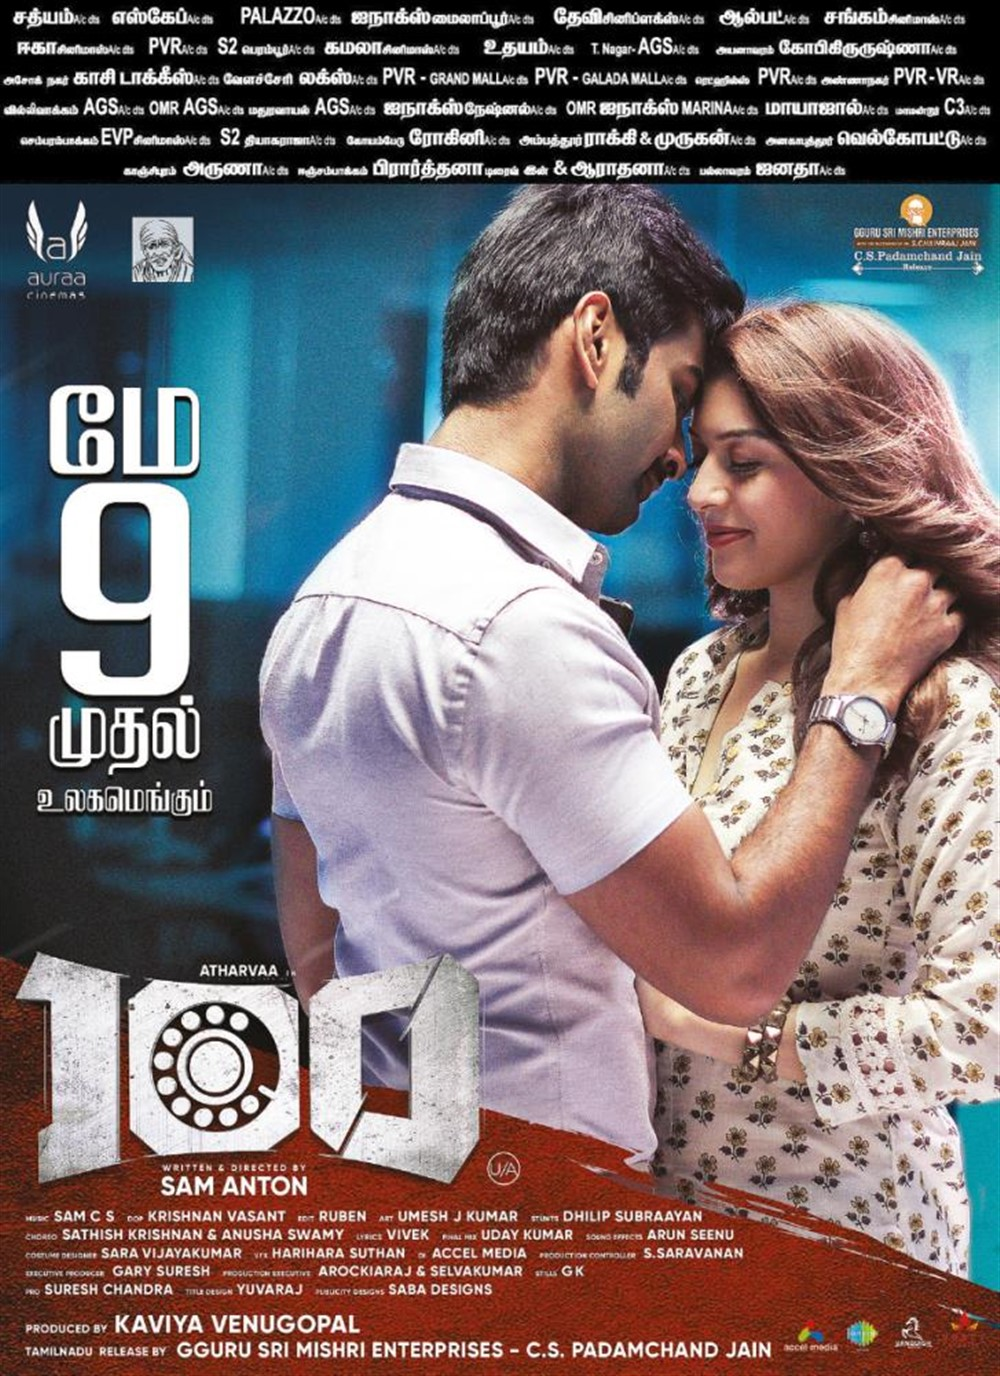 Atharva, Hansika in 100 Movie Release Posters